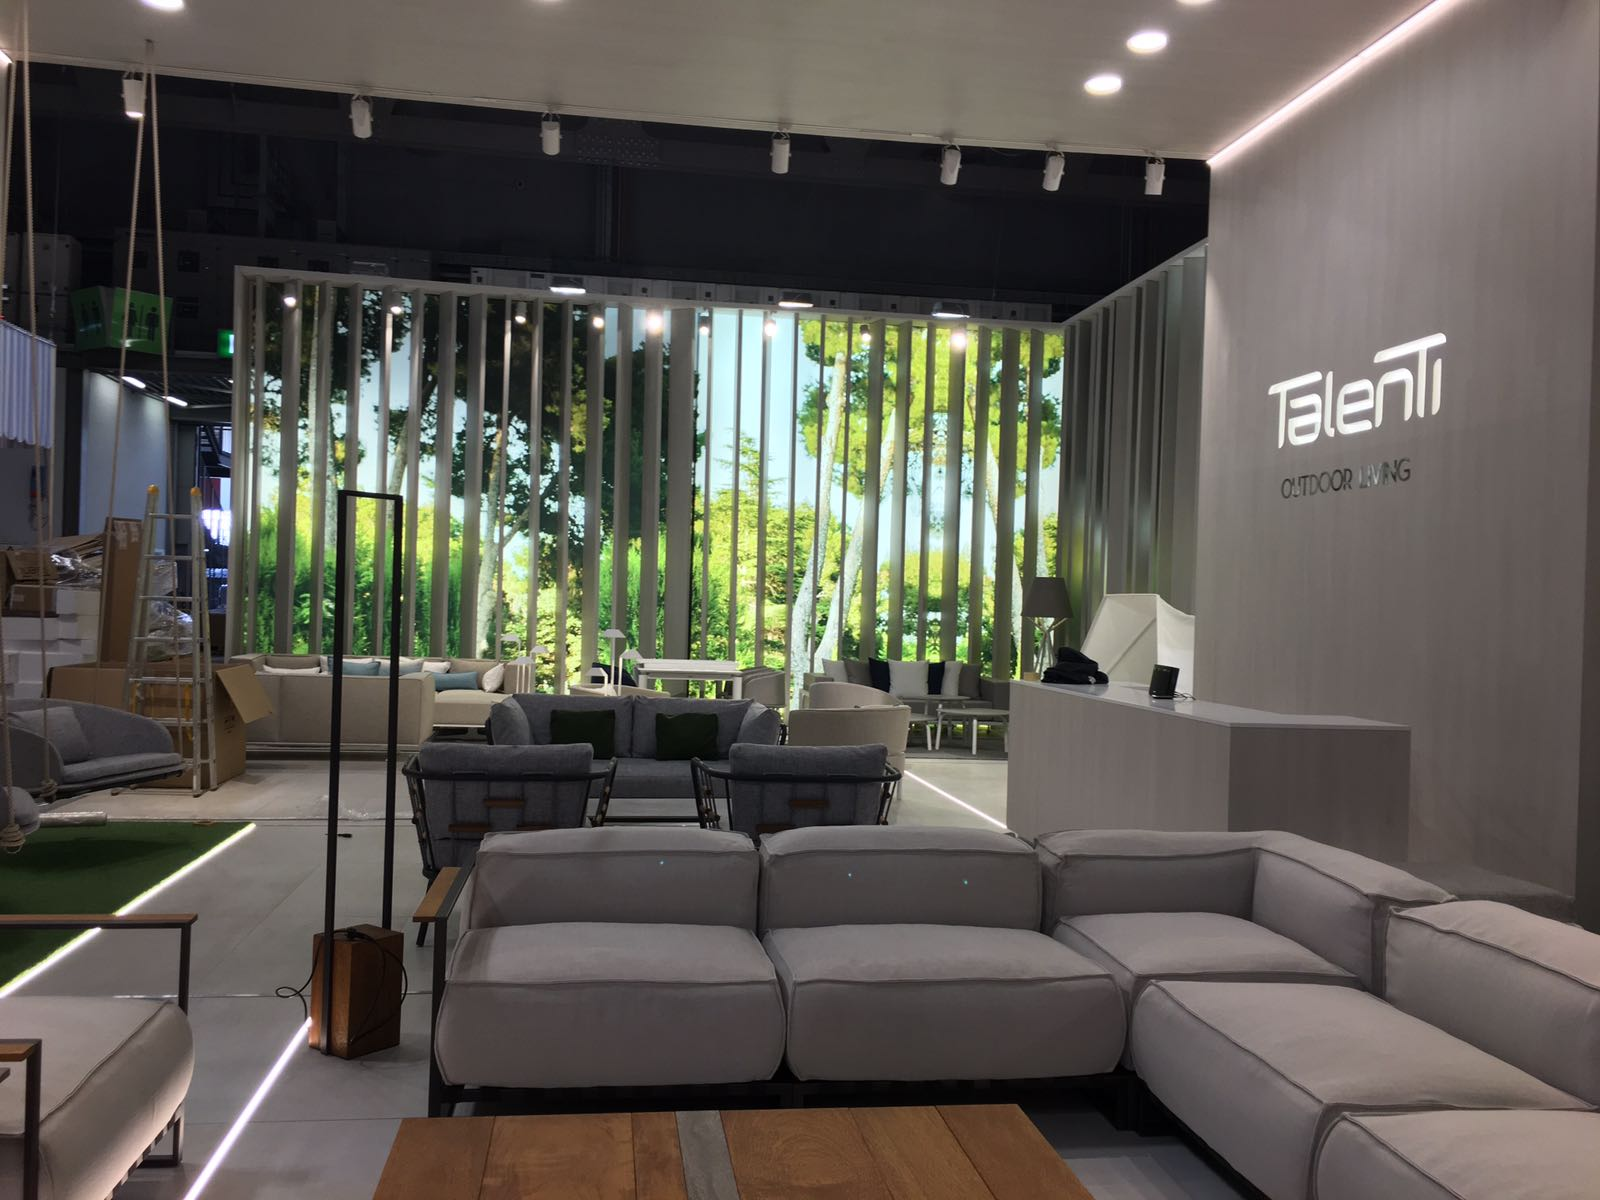 Stands You Must See at ISaloni 2017 Tomorrow salone del mobile 2017 Stands You Must See at Salone del Mobile 2017 Tomorrow Stands You Must See at Salone del Mobile 2017 Tomorrow 4